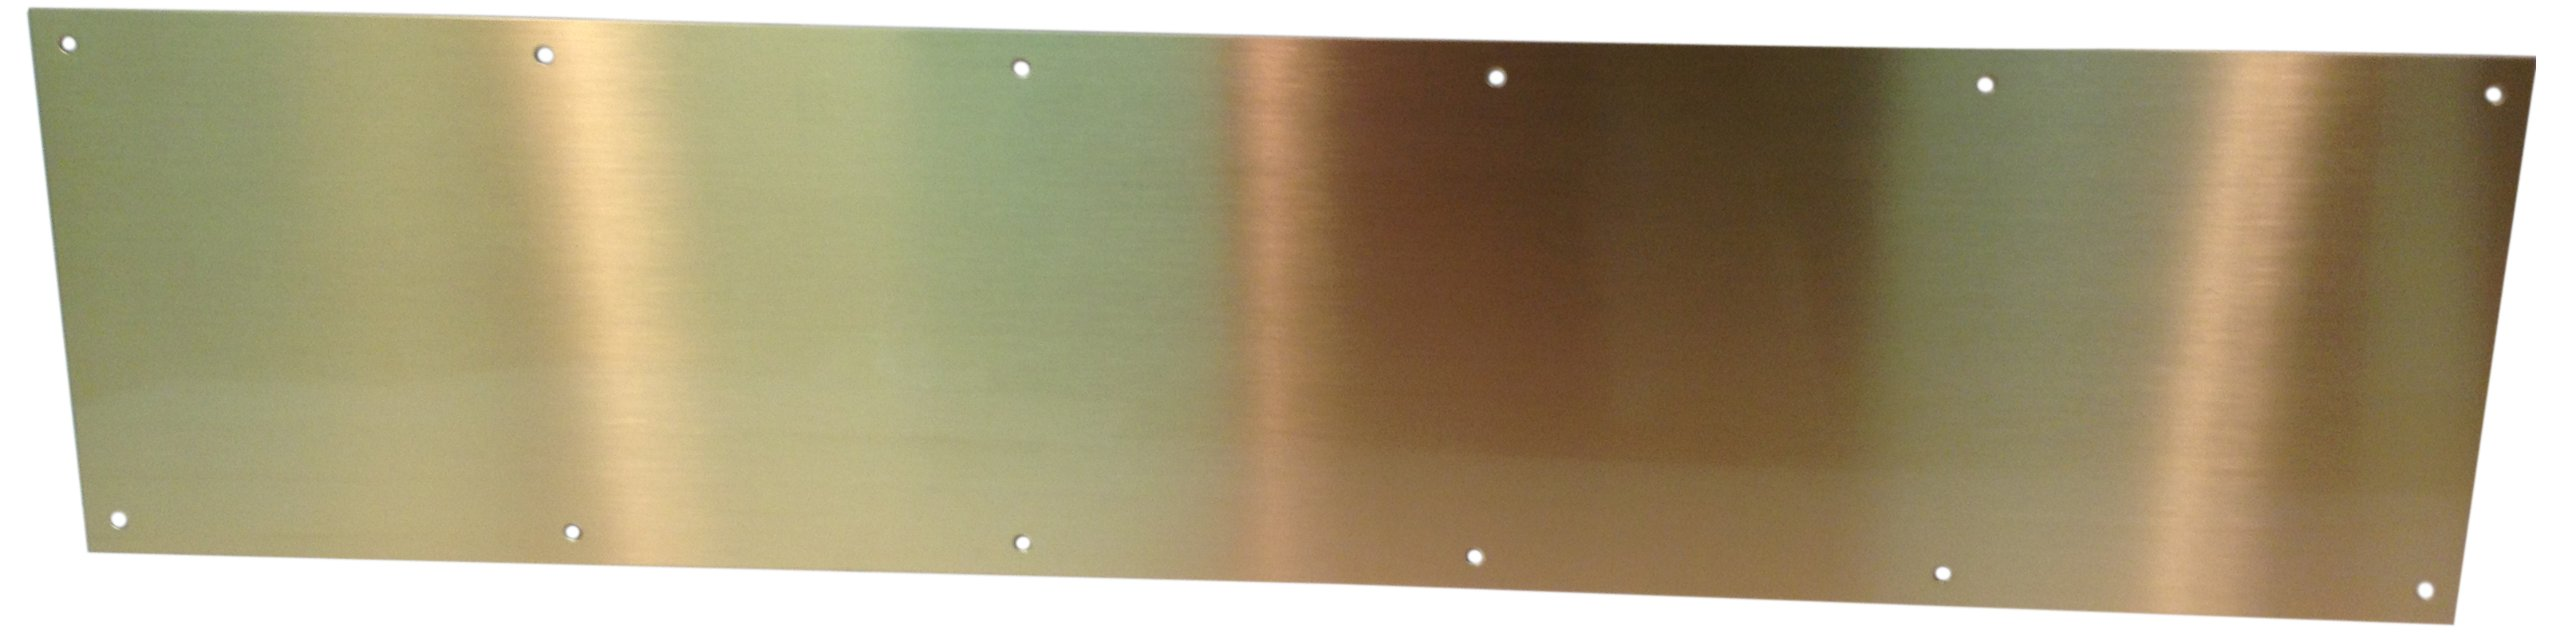 Don-Jo 90 Metal Kick Plate, Satin Bronze Finish, 28'' Width x 6'' Height, 3/64'' Thick